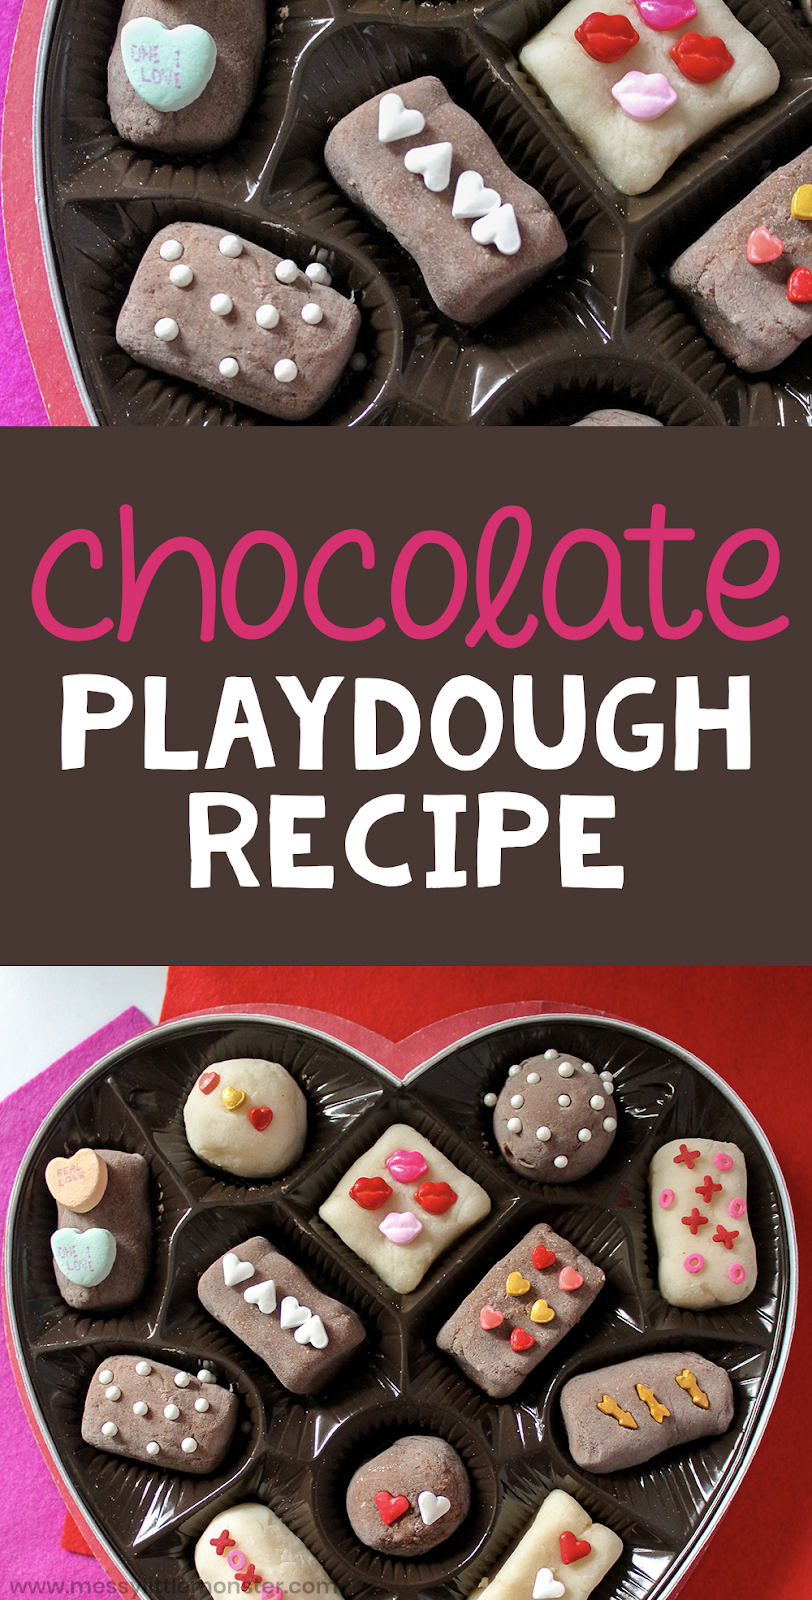 How to make chocolate playdough. Follow our easy chocolate playdough recipe and have fun using it to make a box of playdough chocolates.